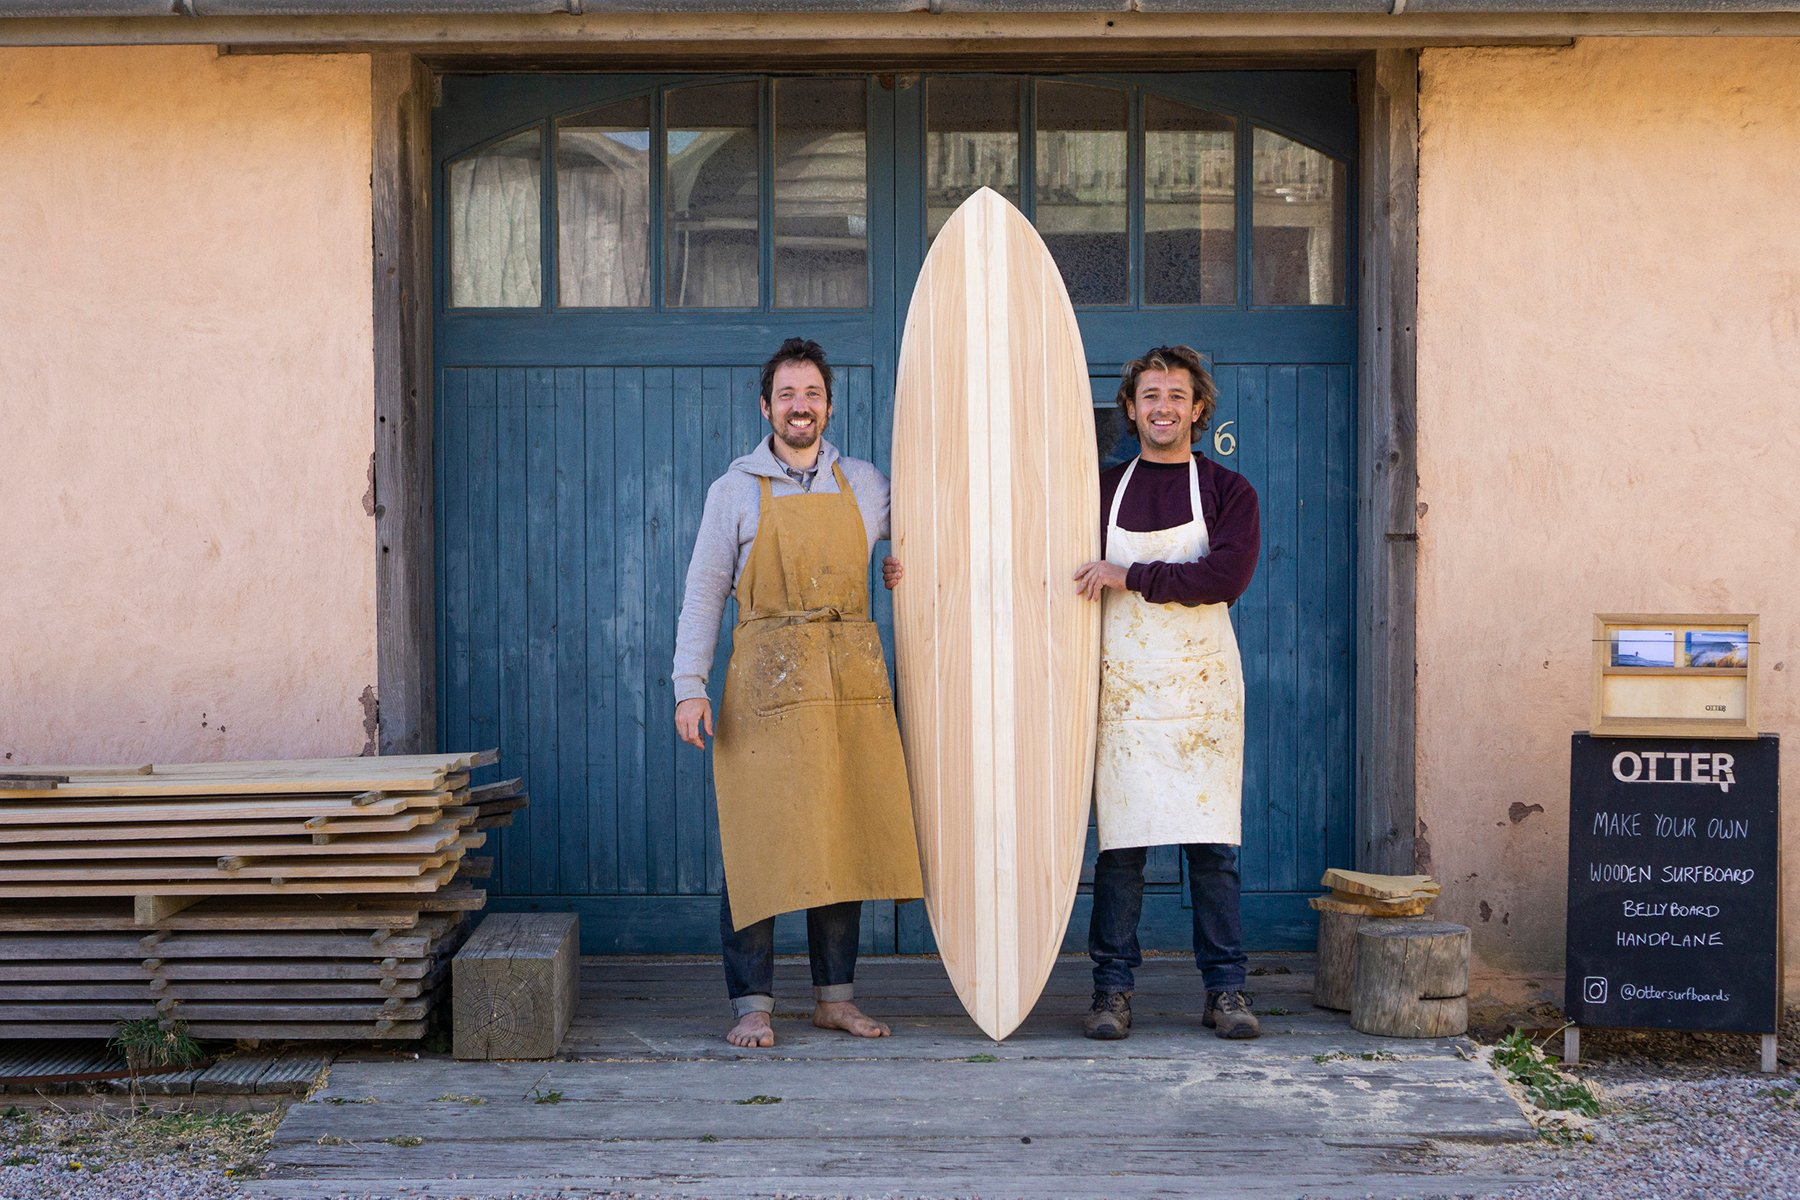 otter wooden surfboard blue doors workshop experience